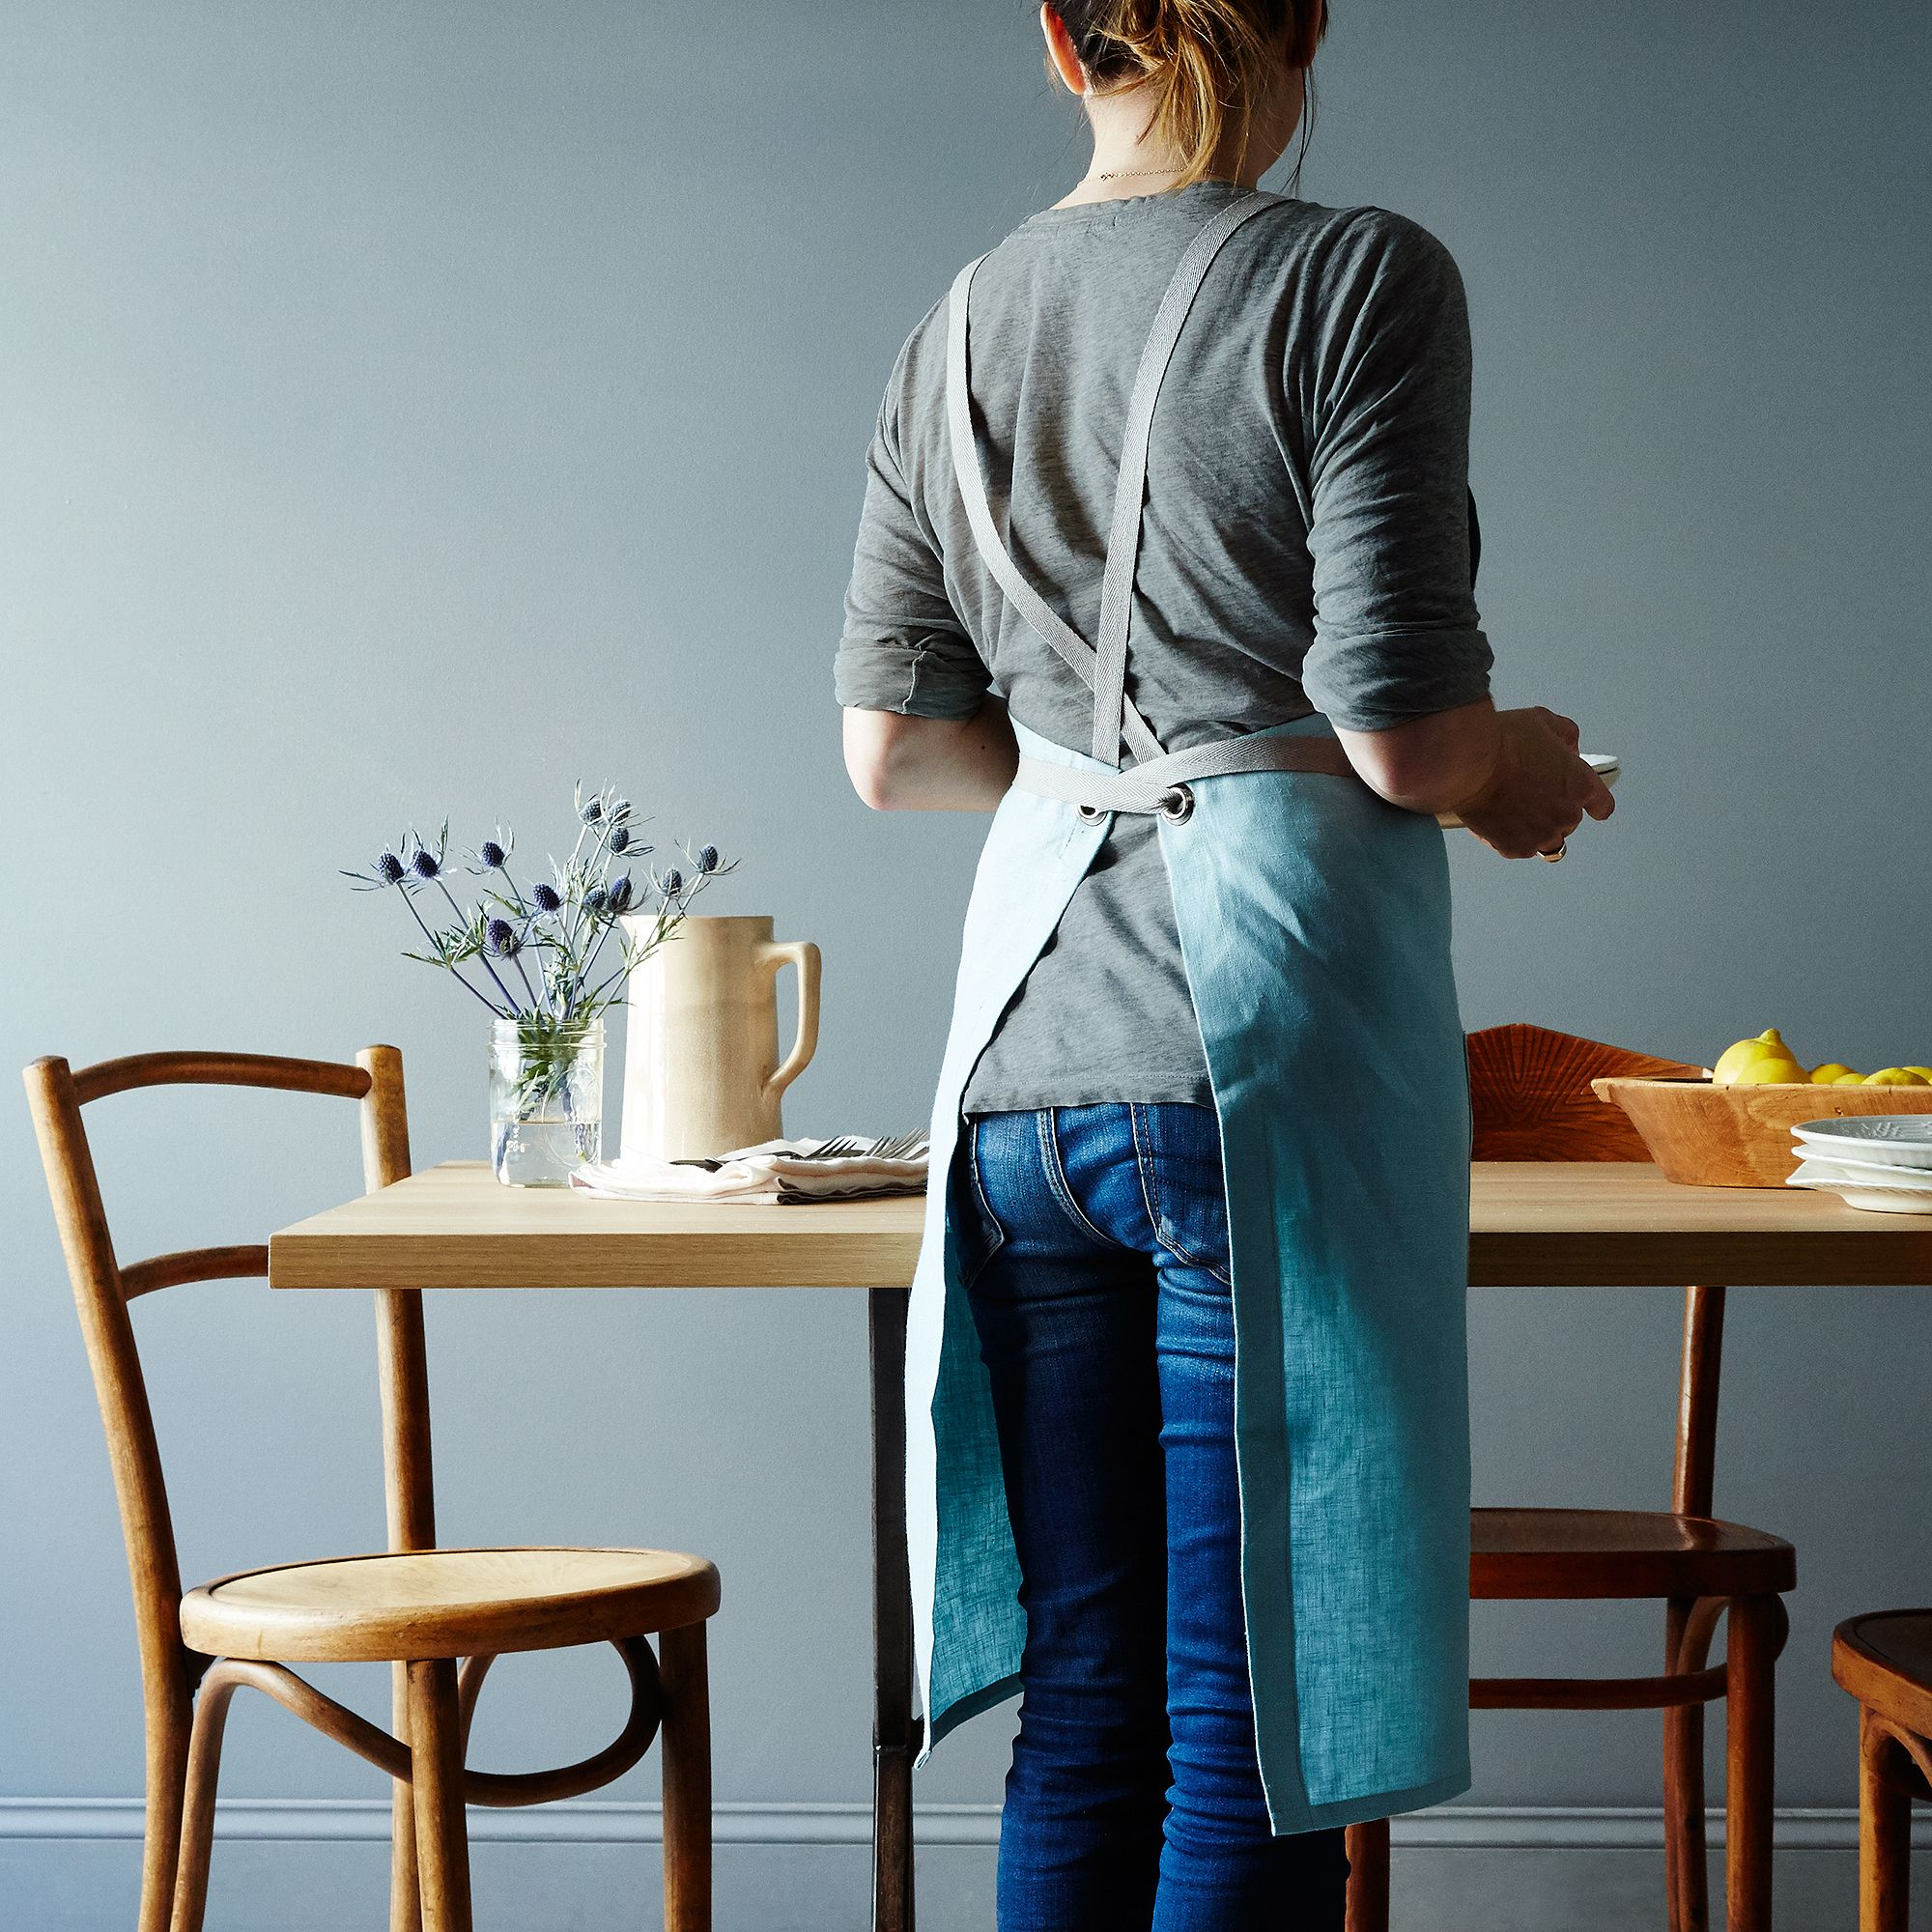 Blue apron jobs